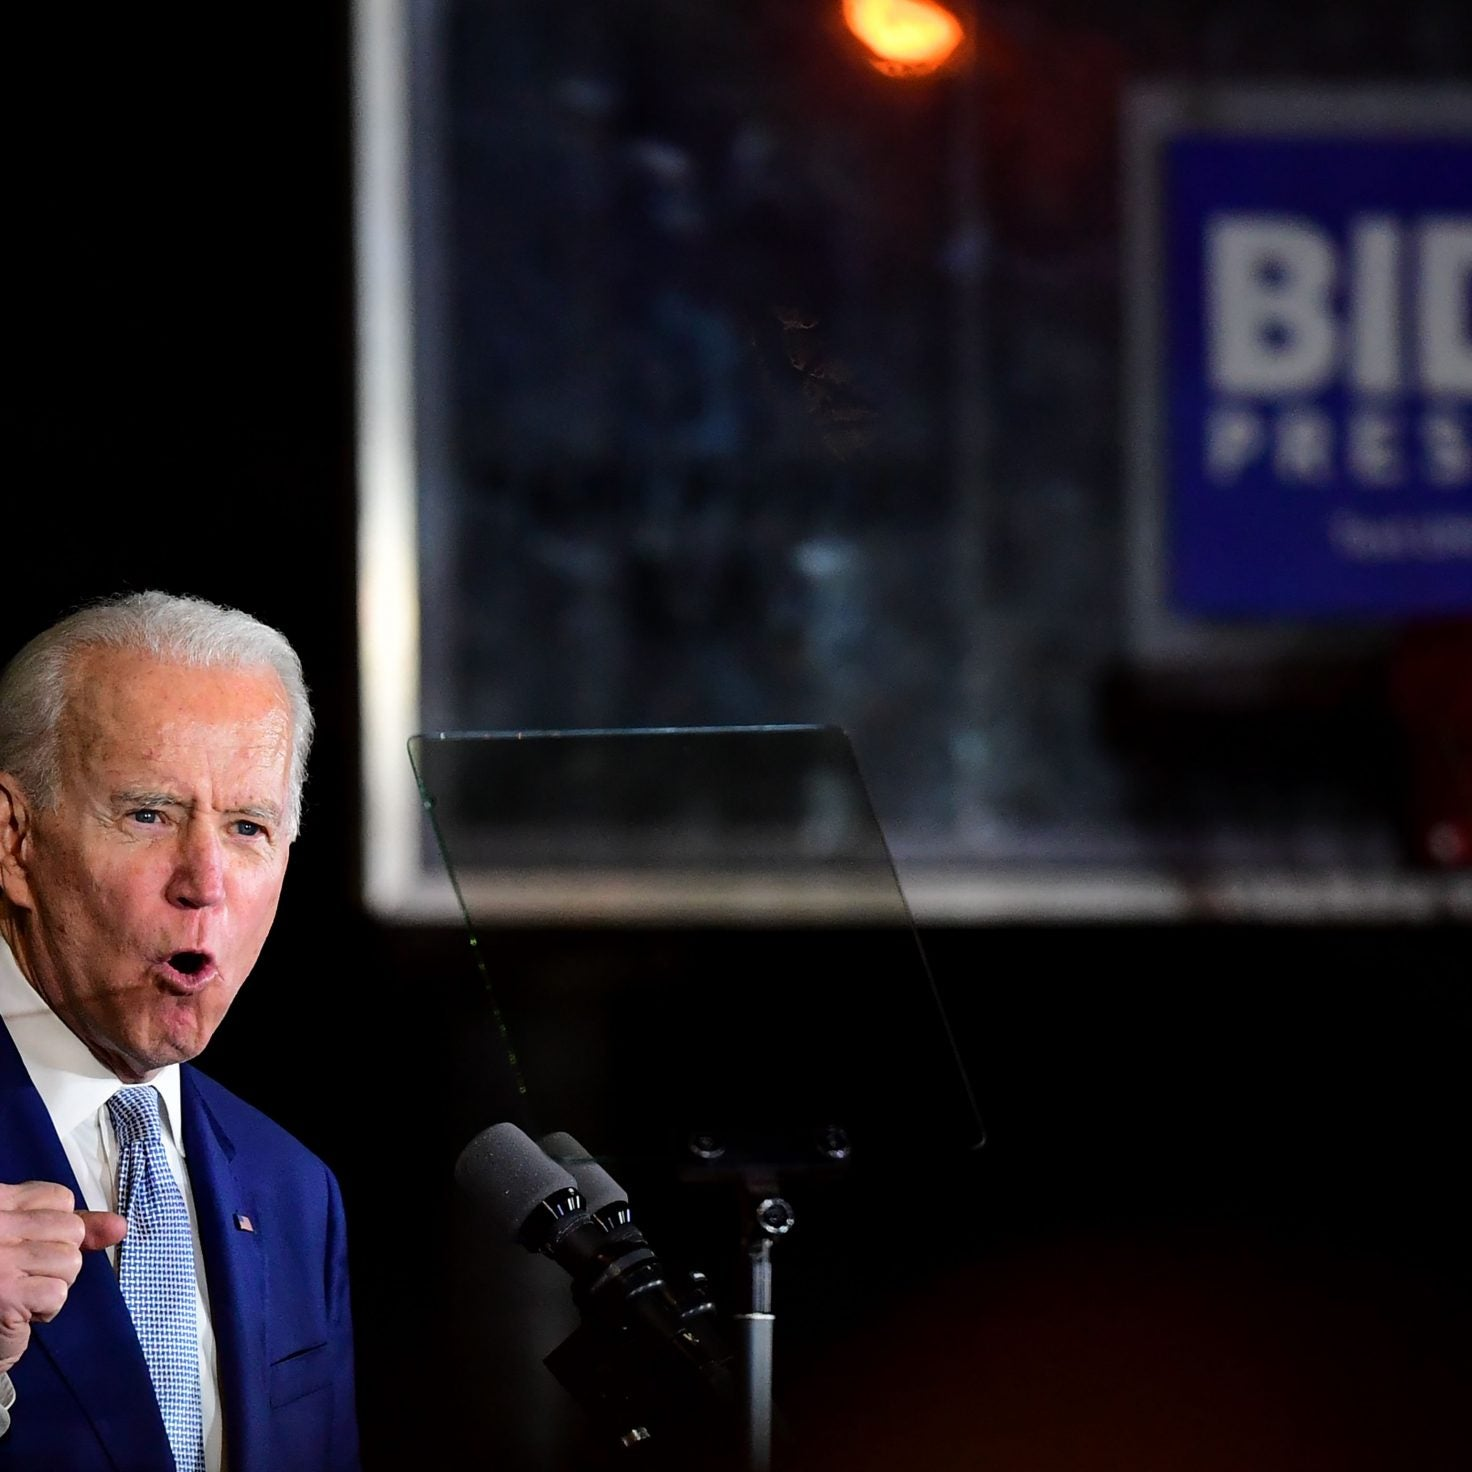 Joe Biden Makes Stunning Comeback With Super Tuesday Wins